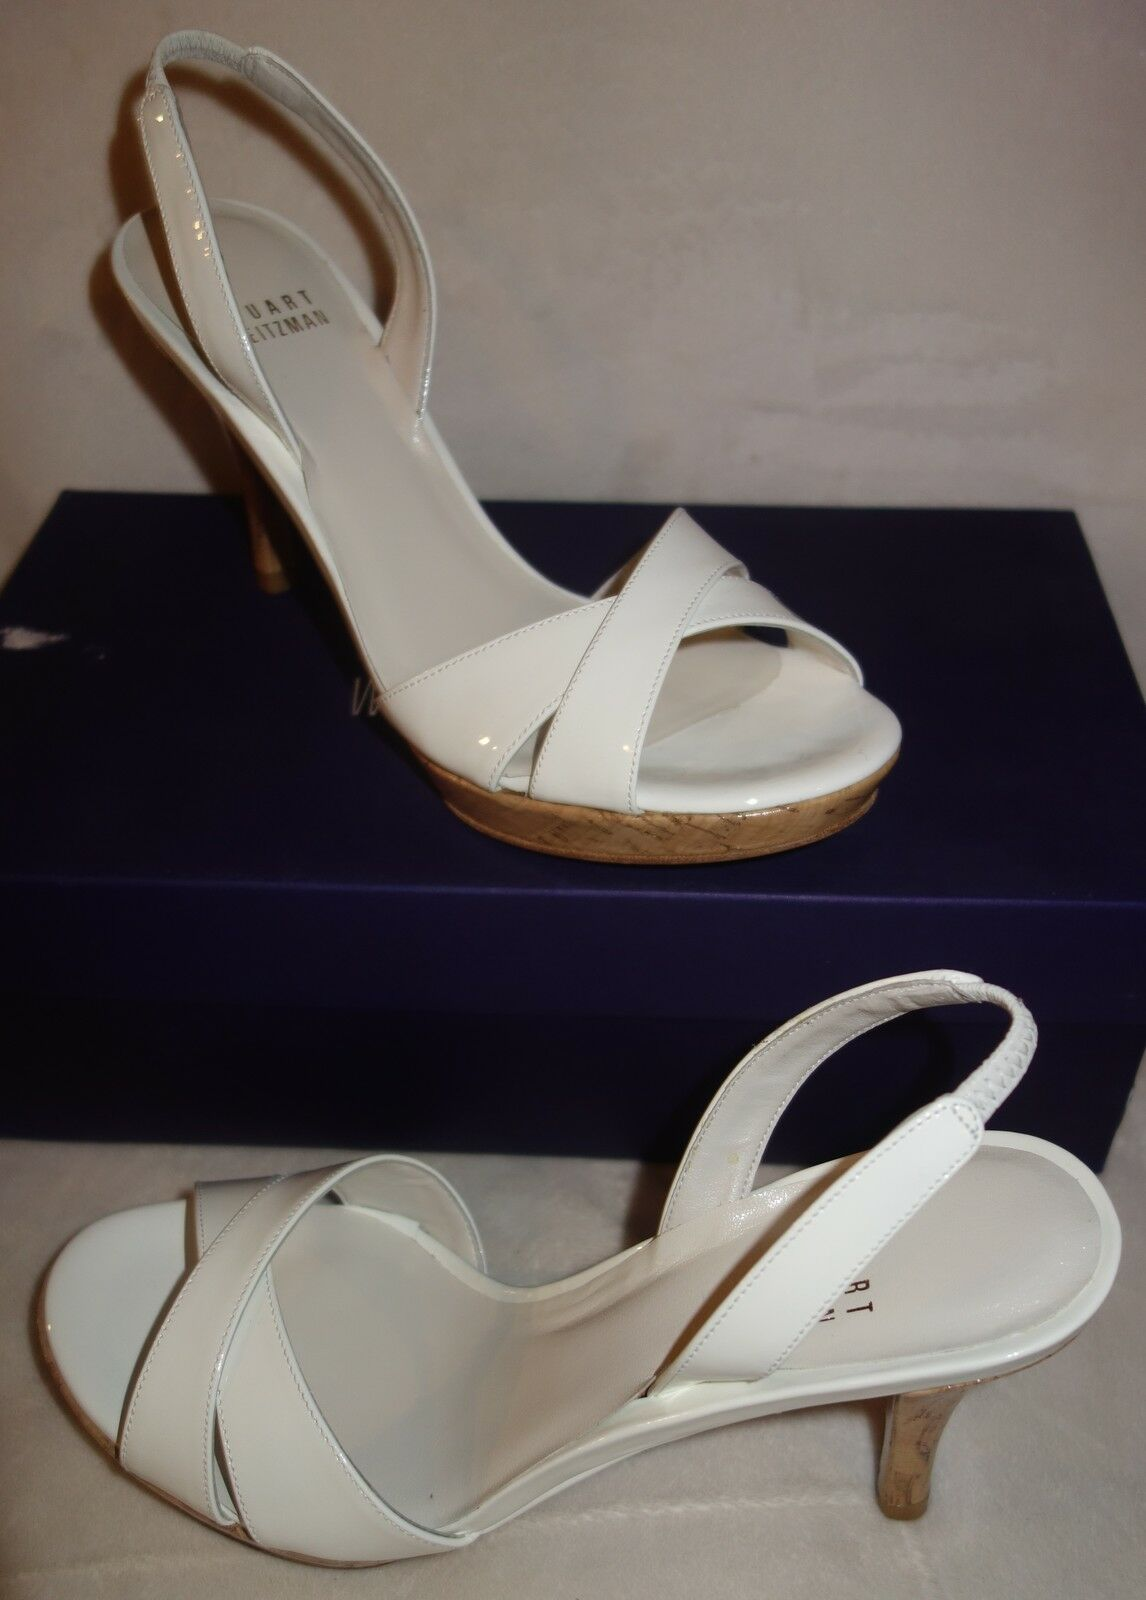 Stuart Weitzman Glorious white Patent Pelle Sandals sz 40 new